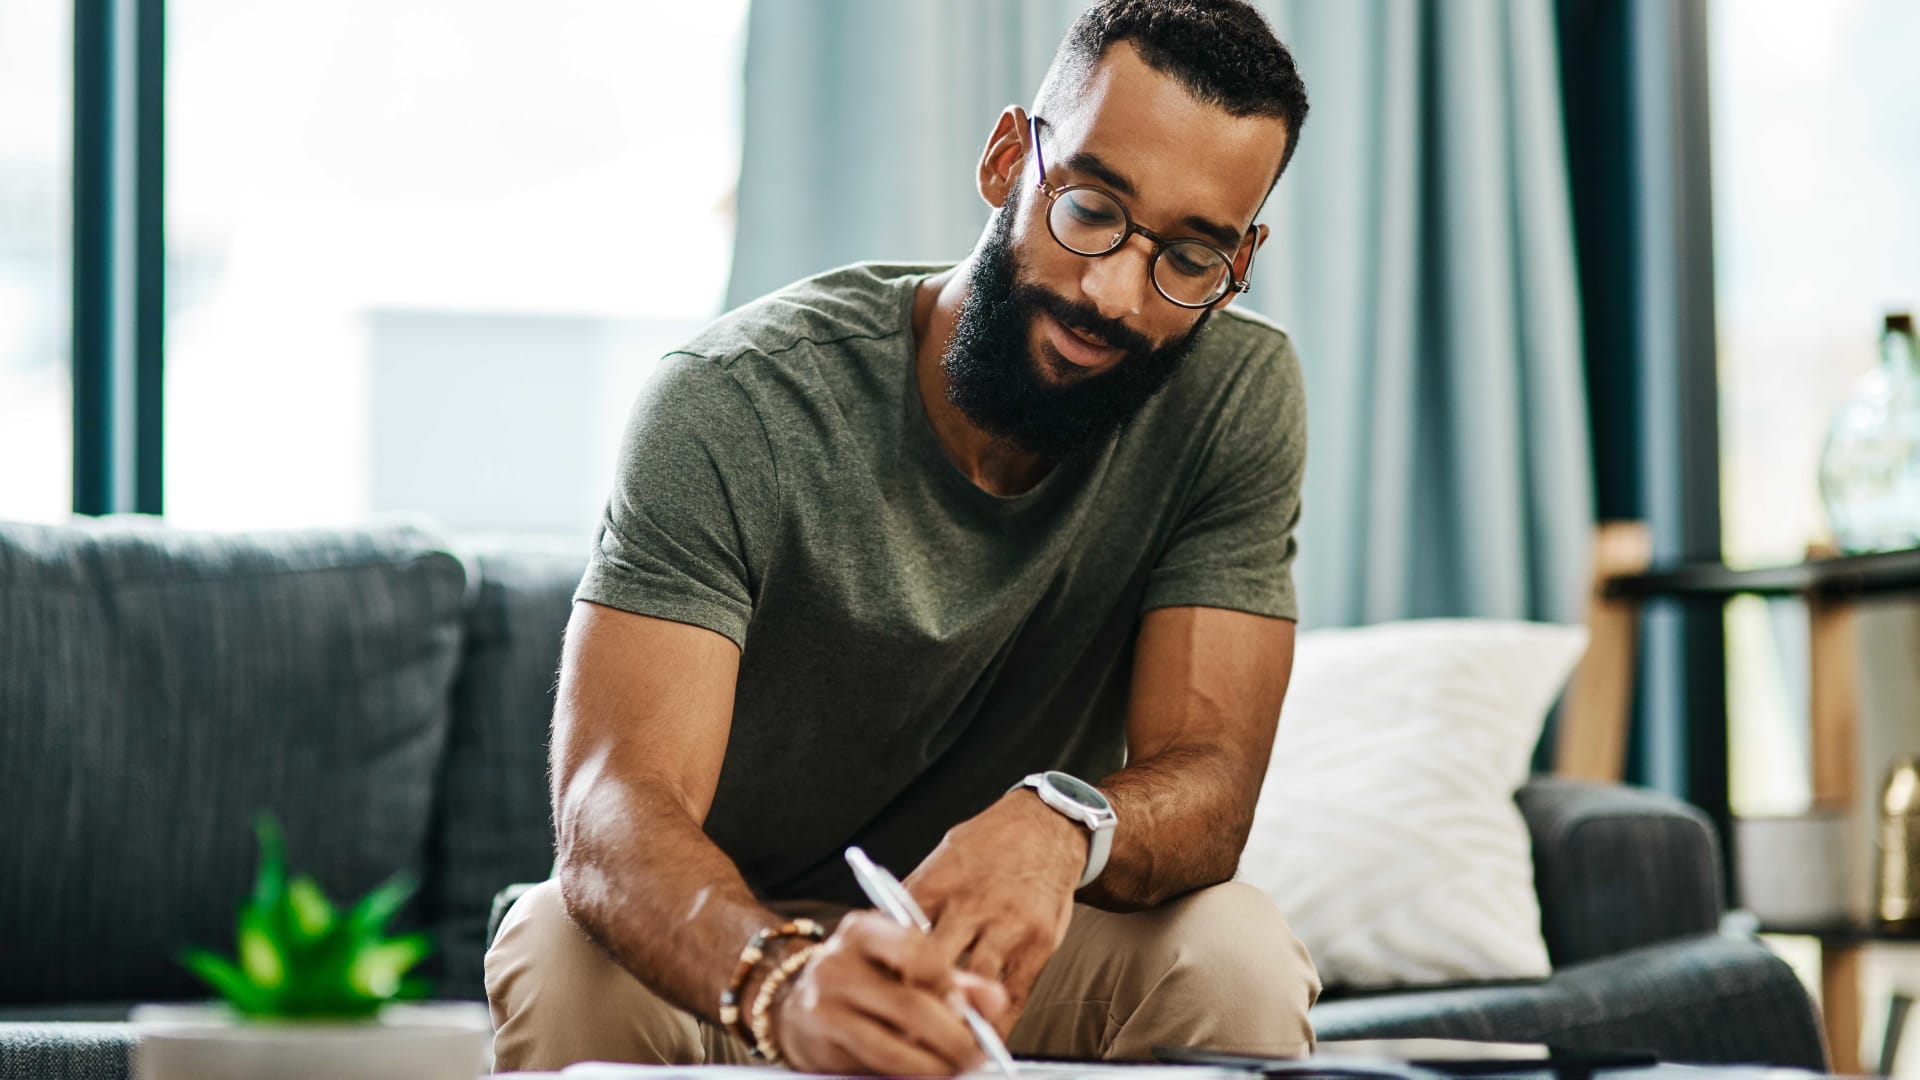 Why Handwritten Notes Matter Now More than Ever